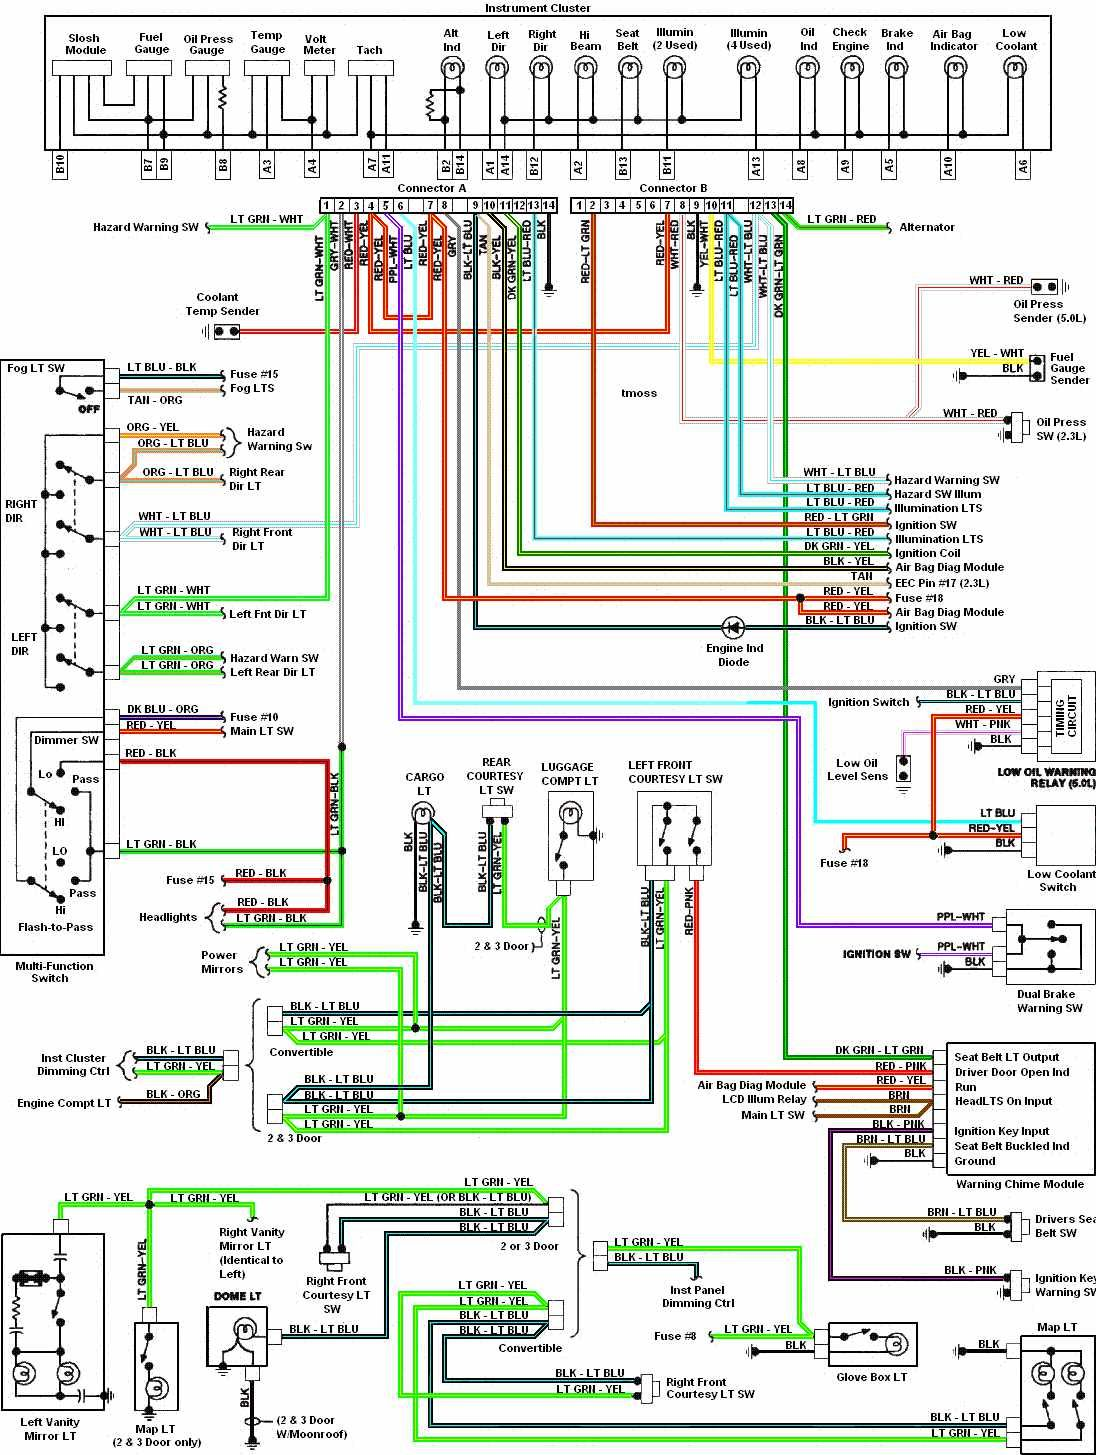 1984 mustang fuse panel diagram library wiring diagram1971 mustang fuse panel diagram library wiring diagram 94 [ 1096 x 1455 Pixel ]